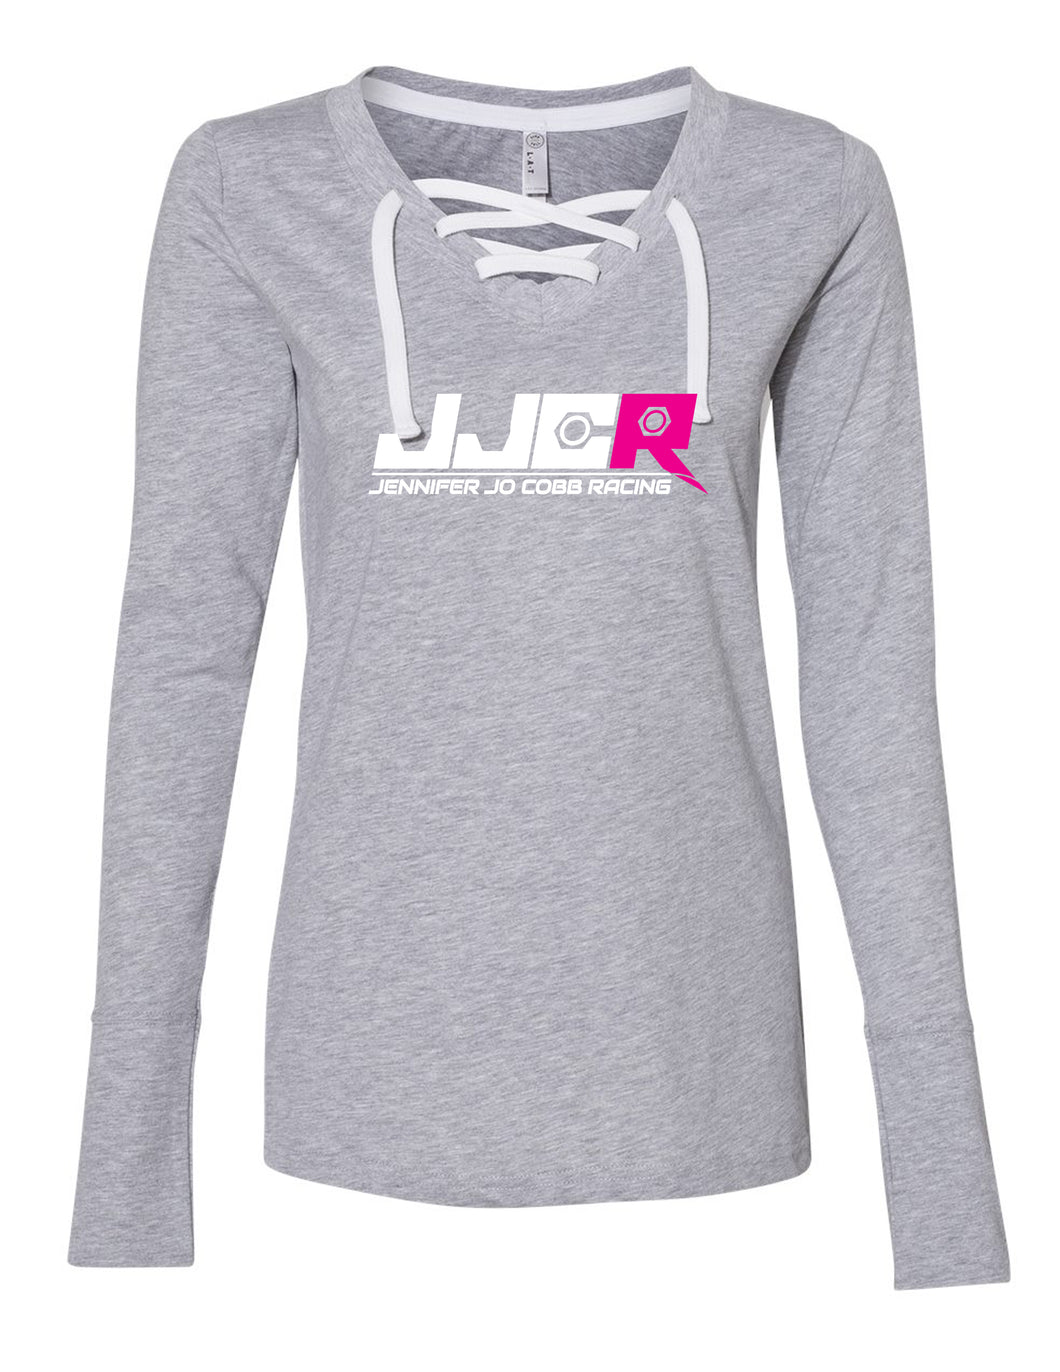 Women Long Sleeve Gray Lace Up JJCR Tee